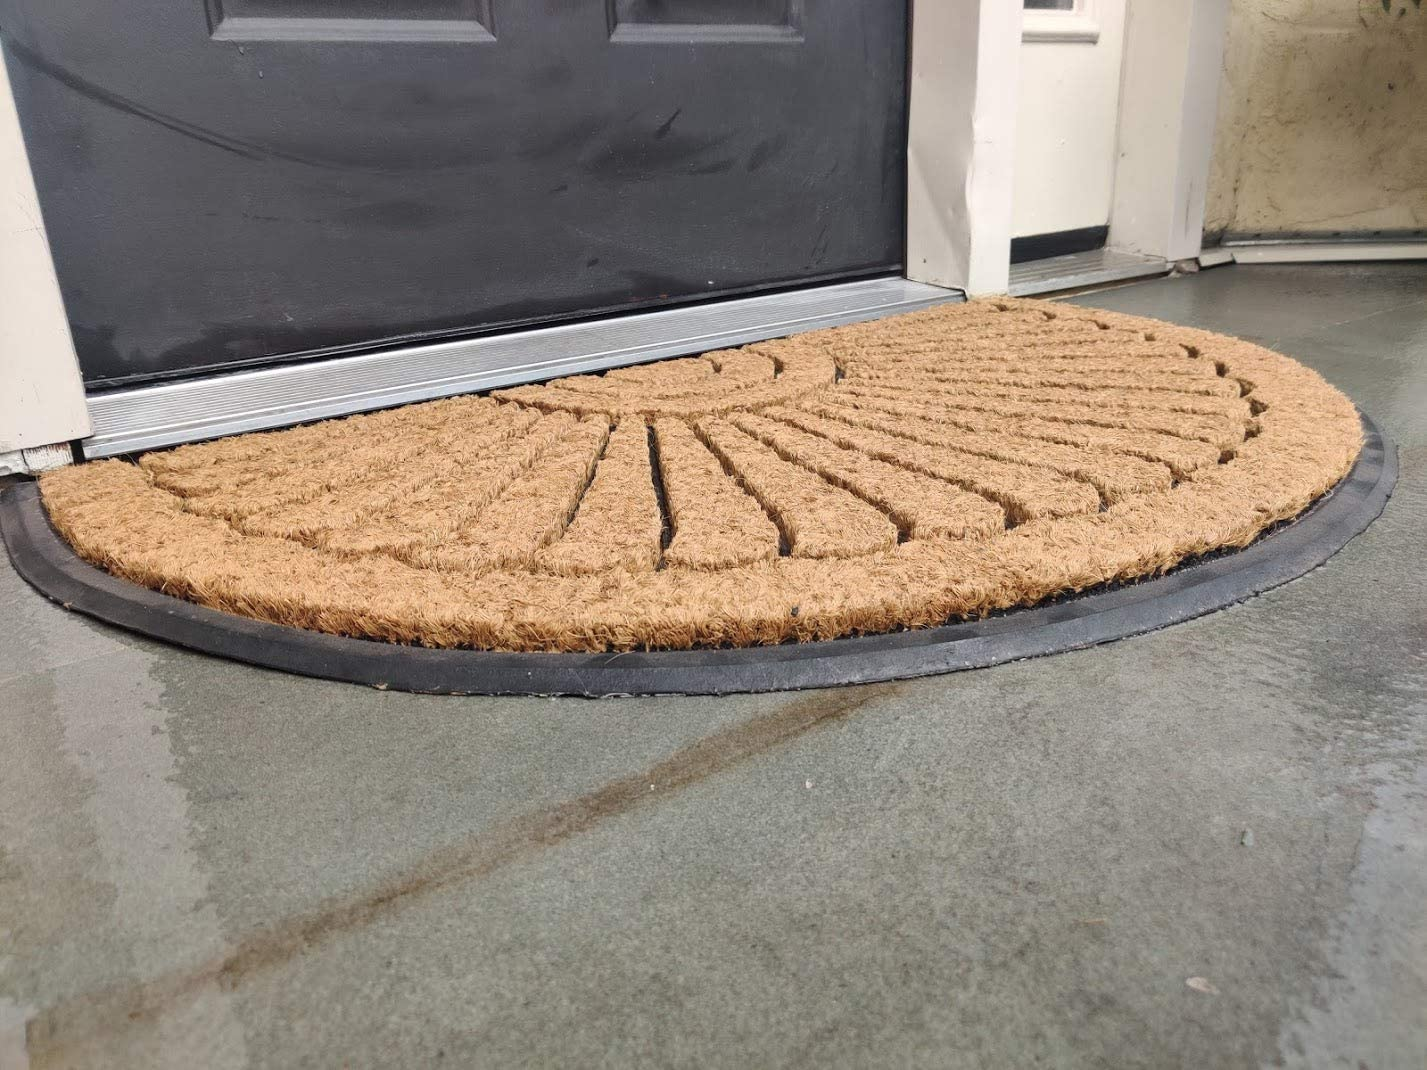 Kempf Half Round Inlaid Sun Ray Doormat Outdoor Entrance Mat 18 X 30 Inch Kitchen Dining